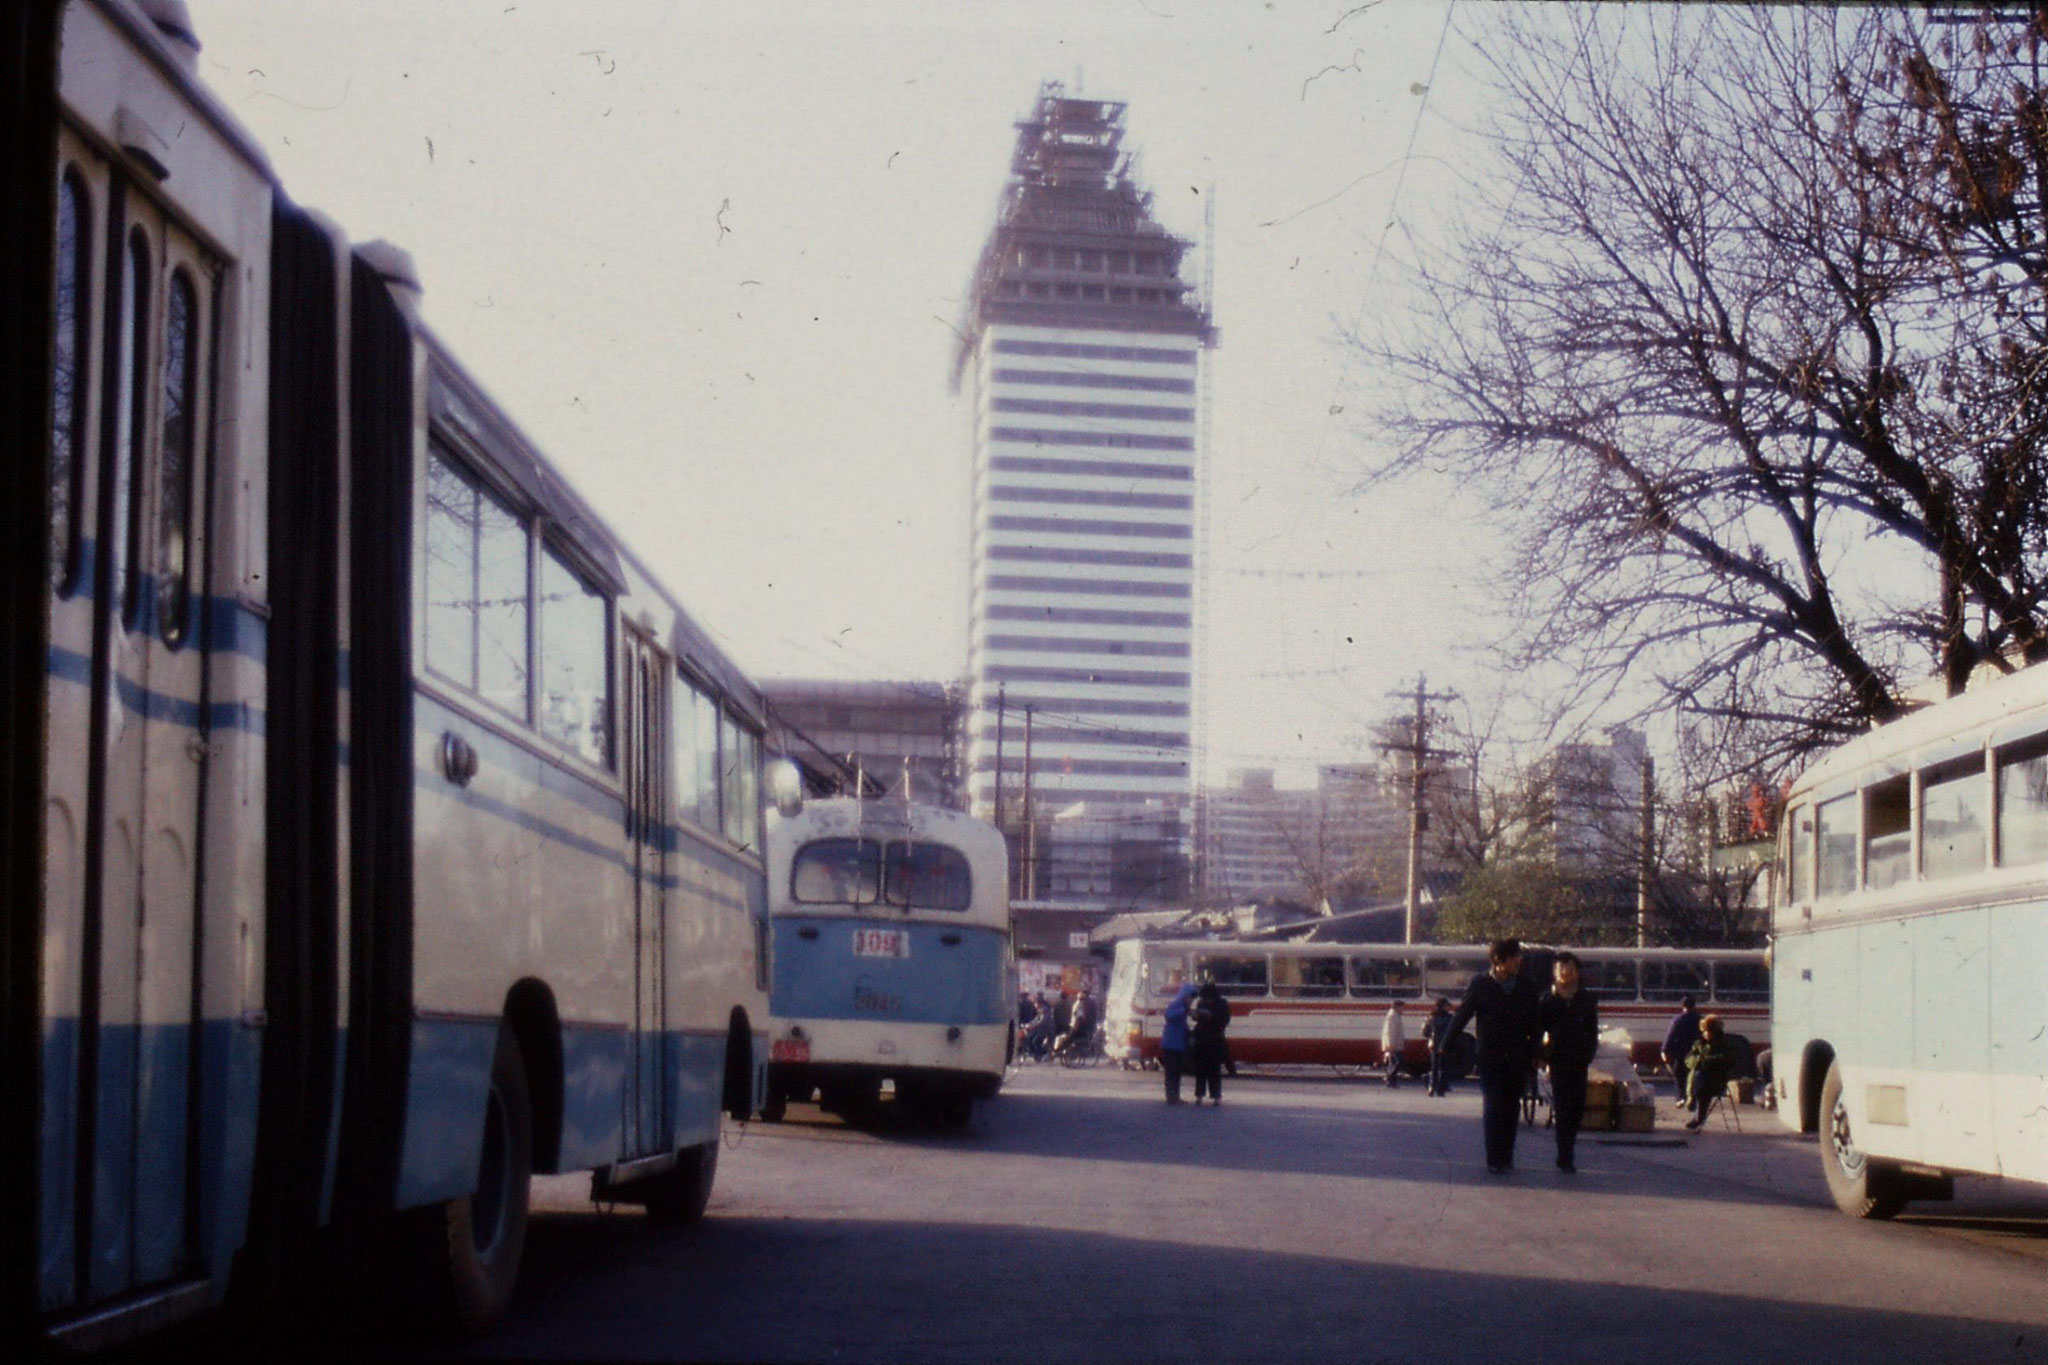 26/11/1988: 6: new construction oppostie China Photo